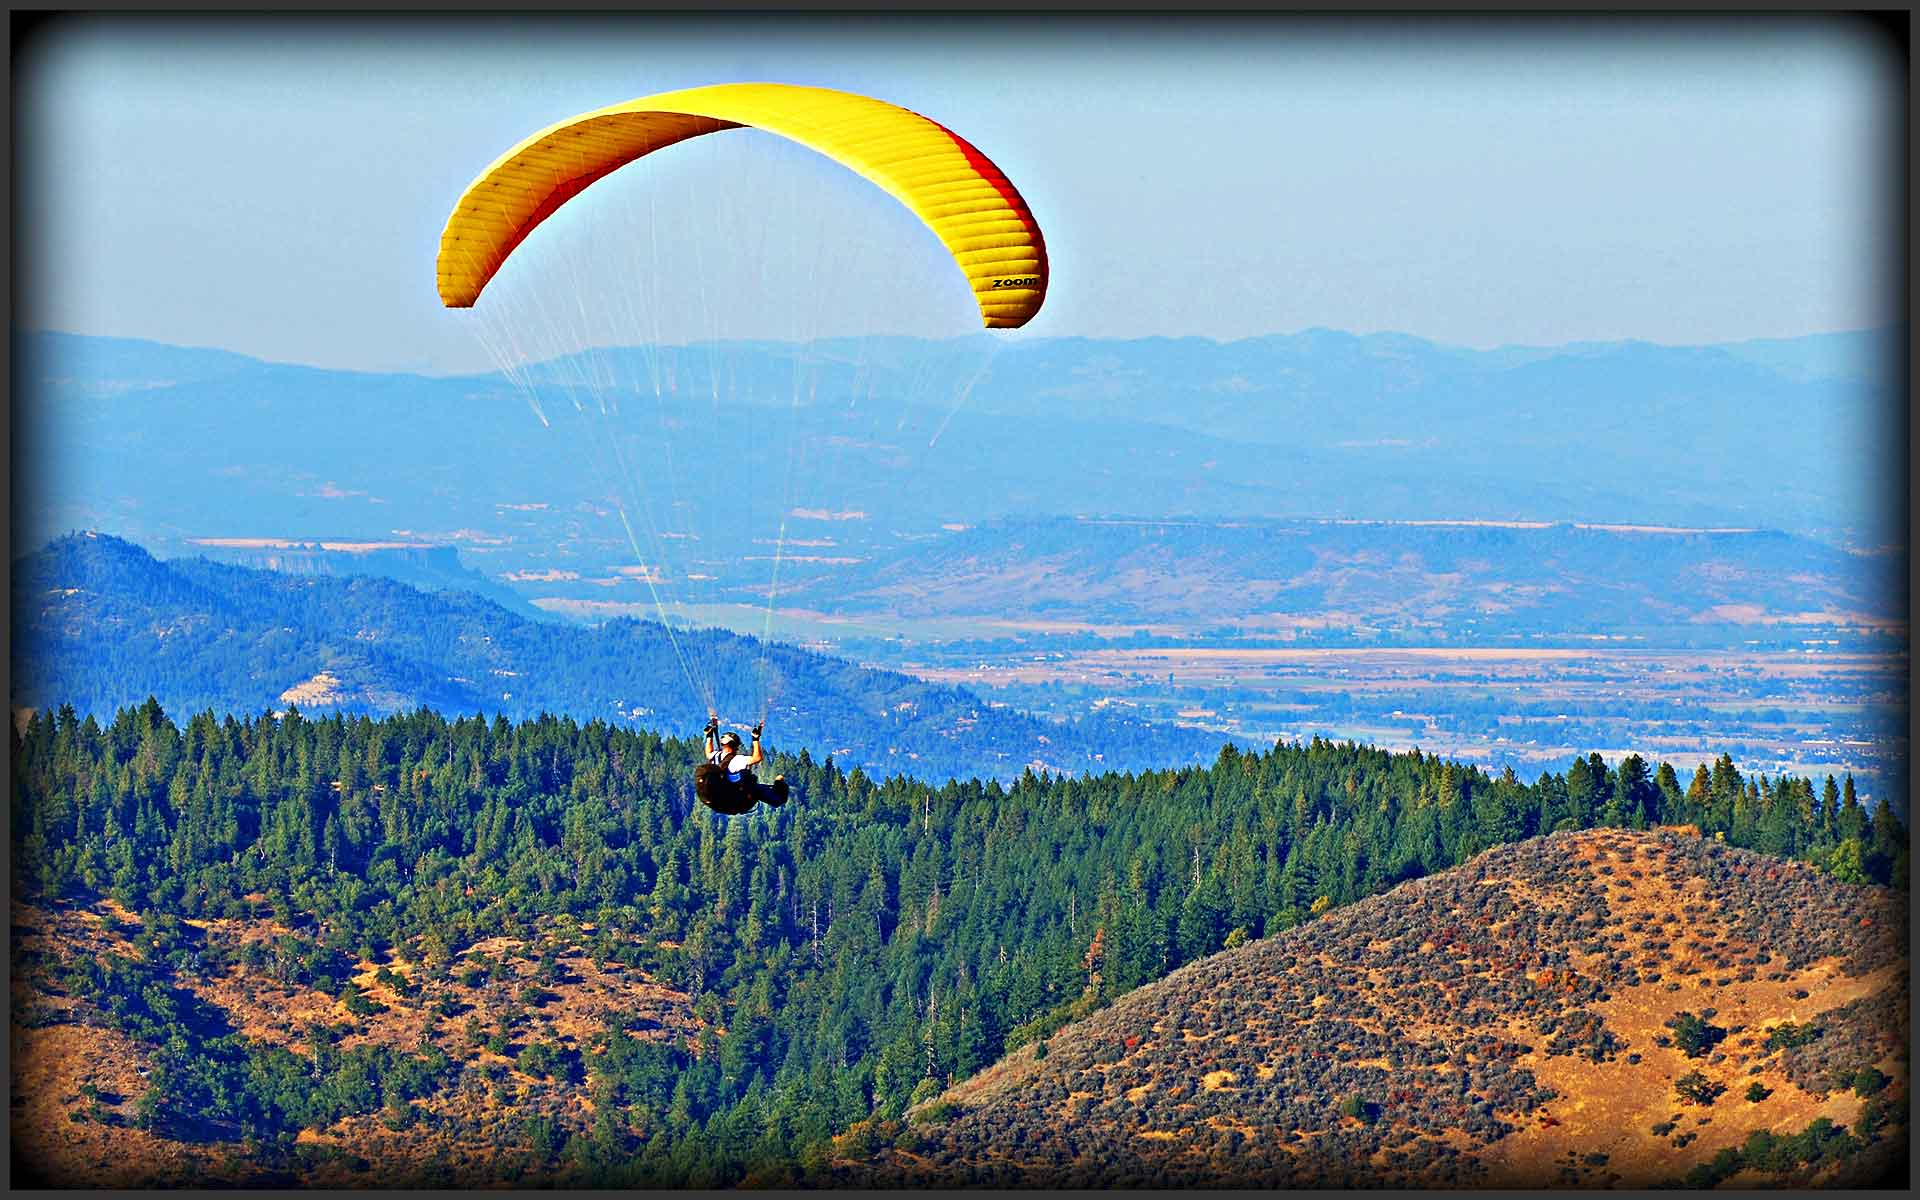 Hang Gliding Pilot over Rogue Valley